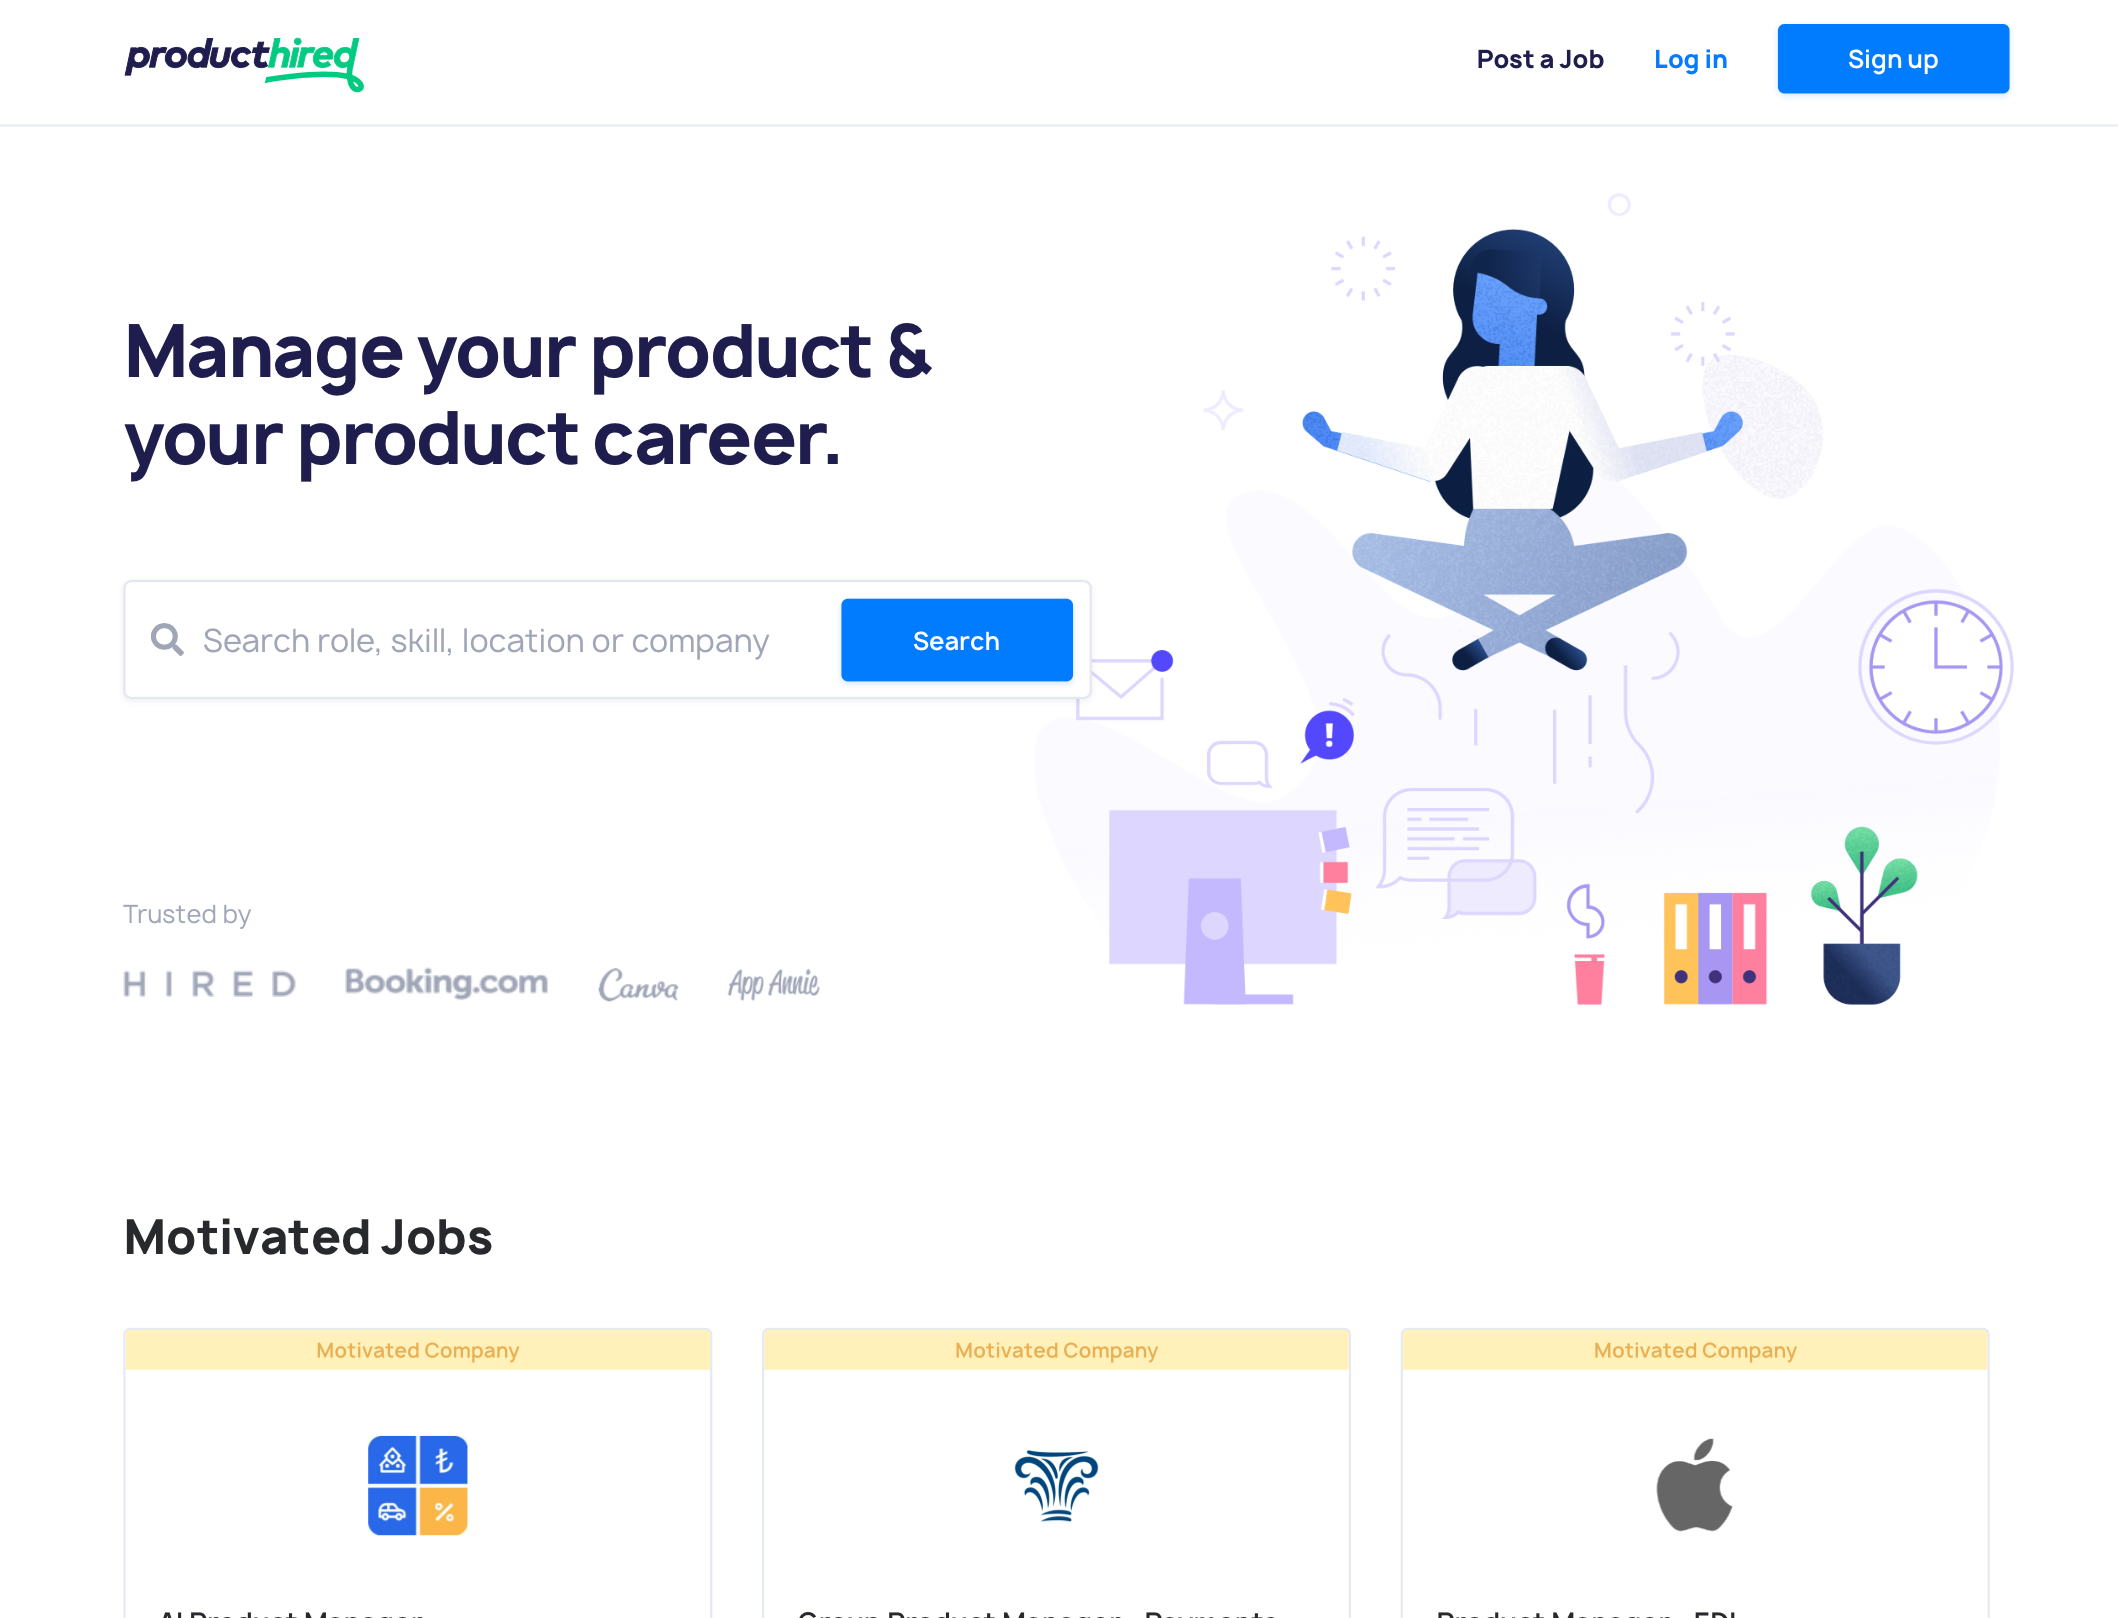 ProductHired 2.0 is launching soon! Sign-up to be notified when we launch! | Product Hunt